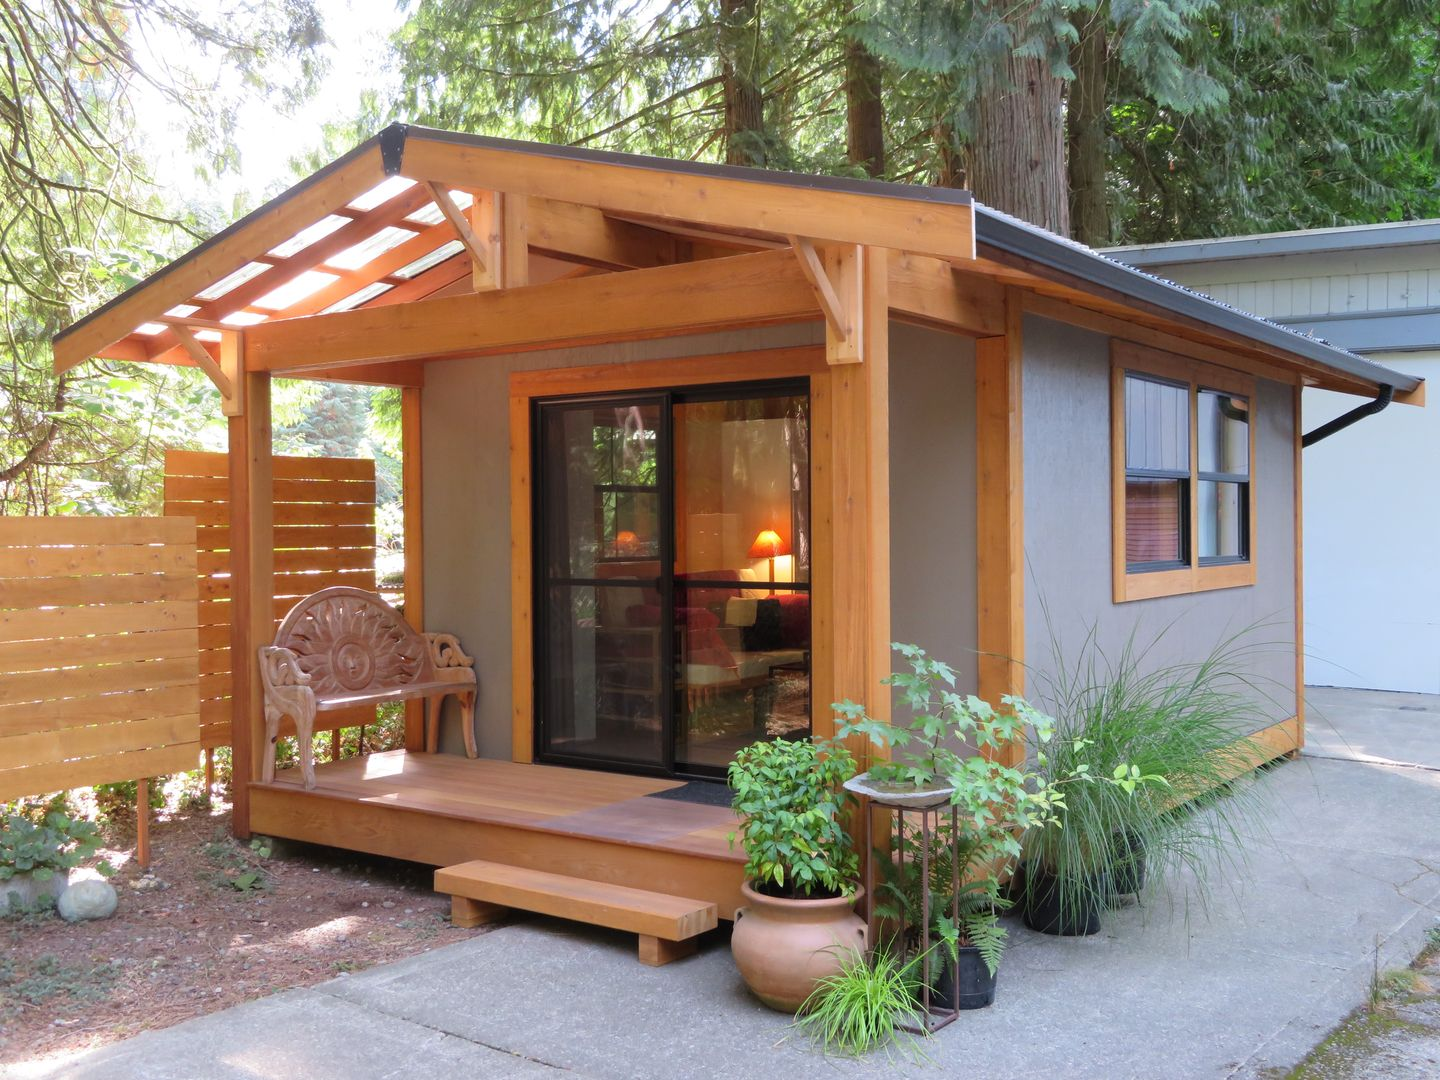 Expandable Tiny House Kits You Or We Can Design, And Assemble.